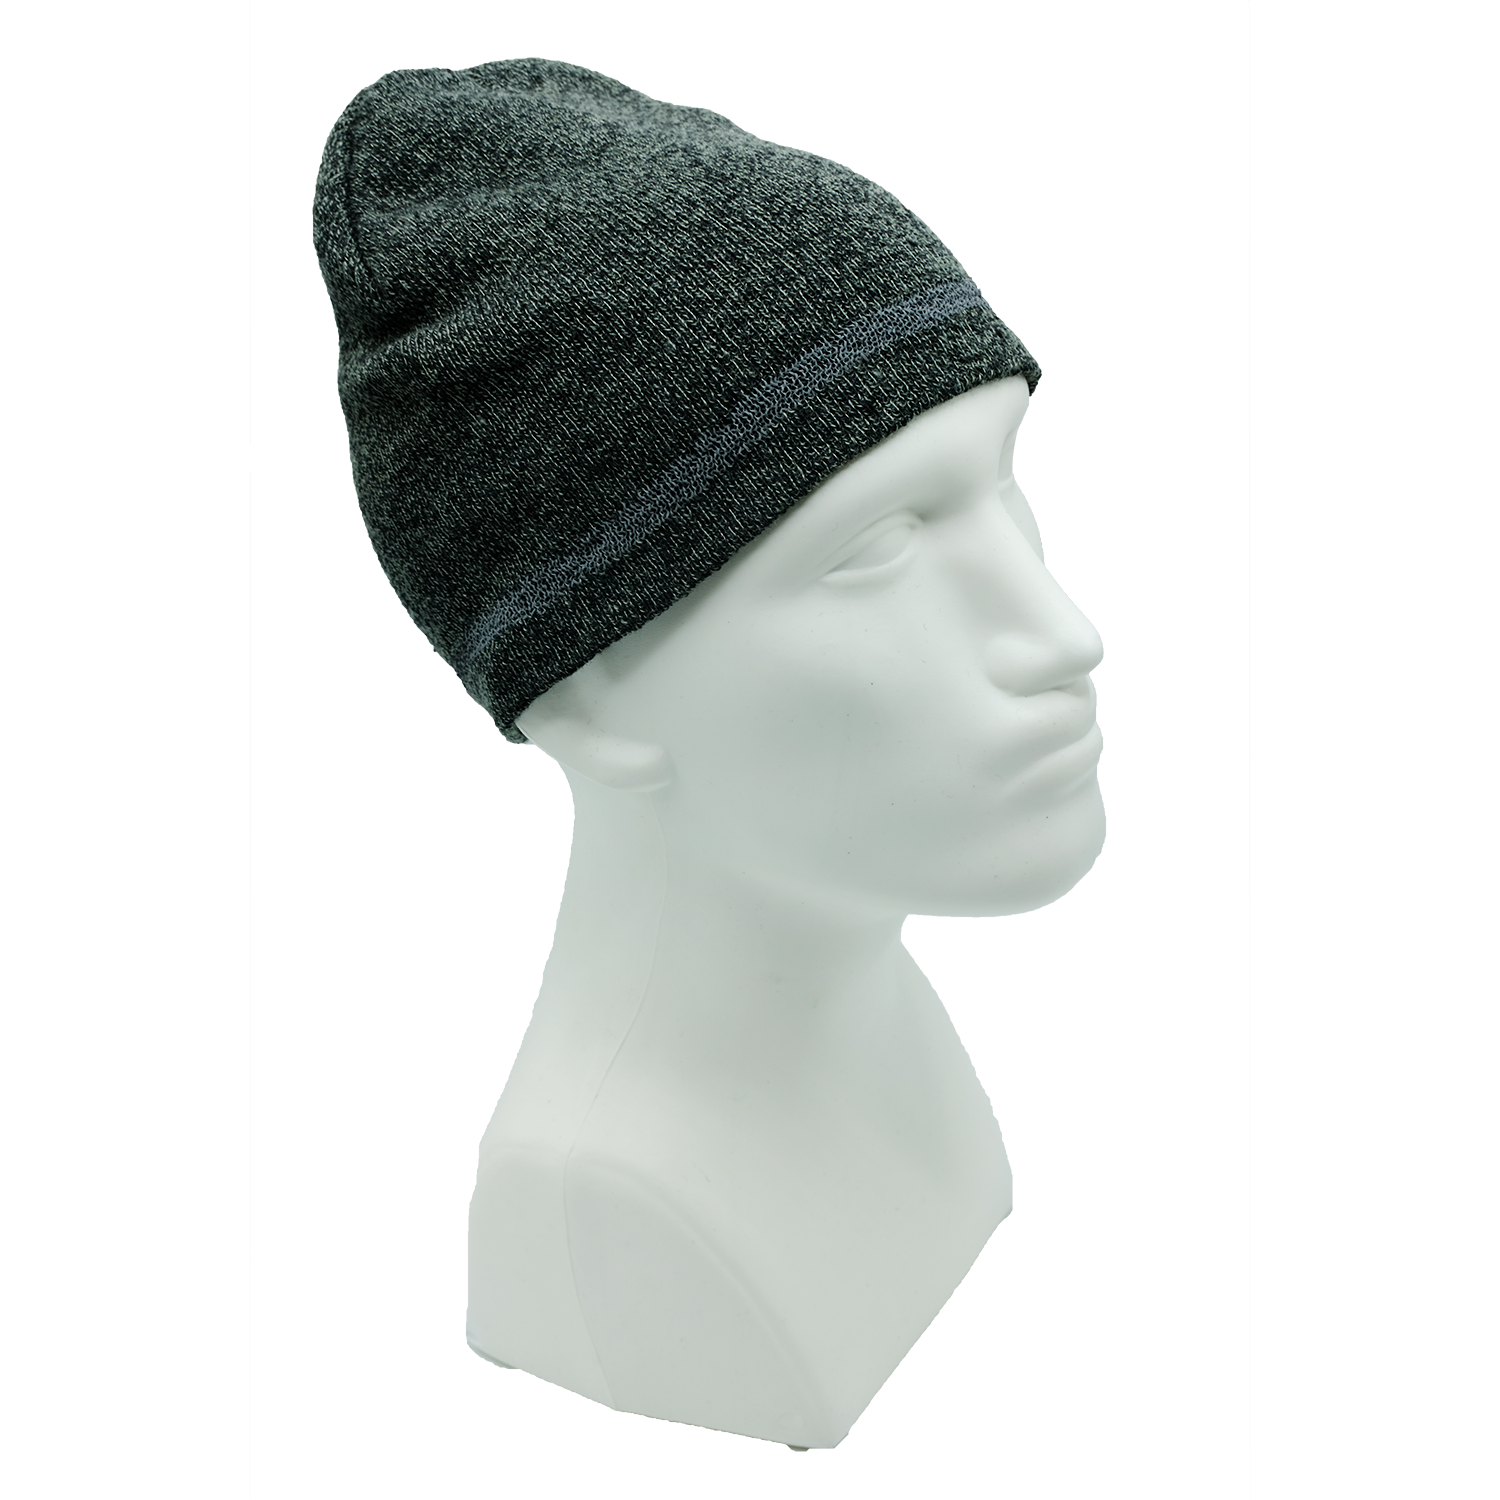 Design your own Reflecting Beanies